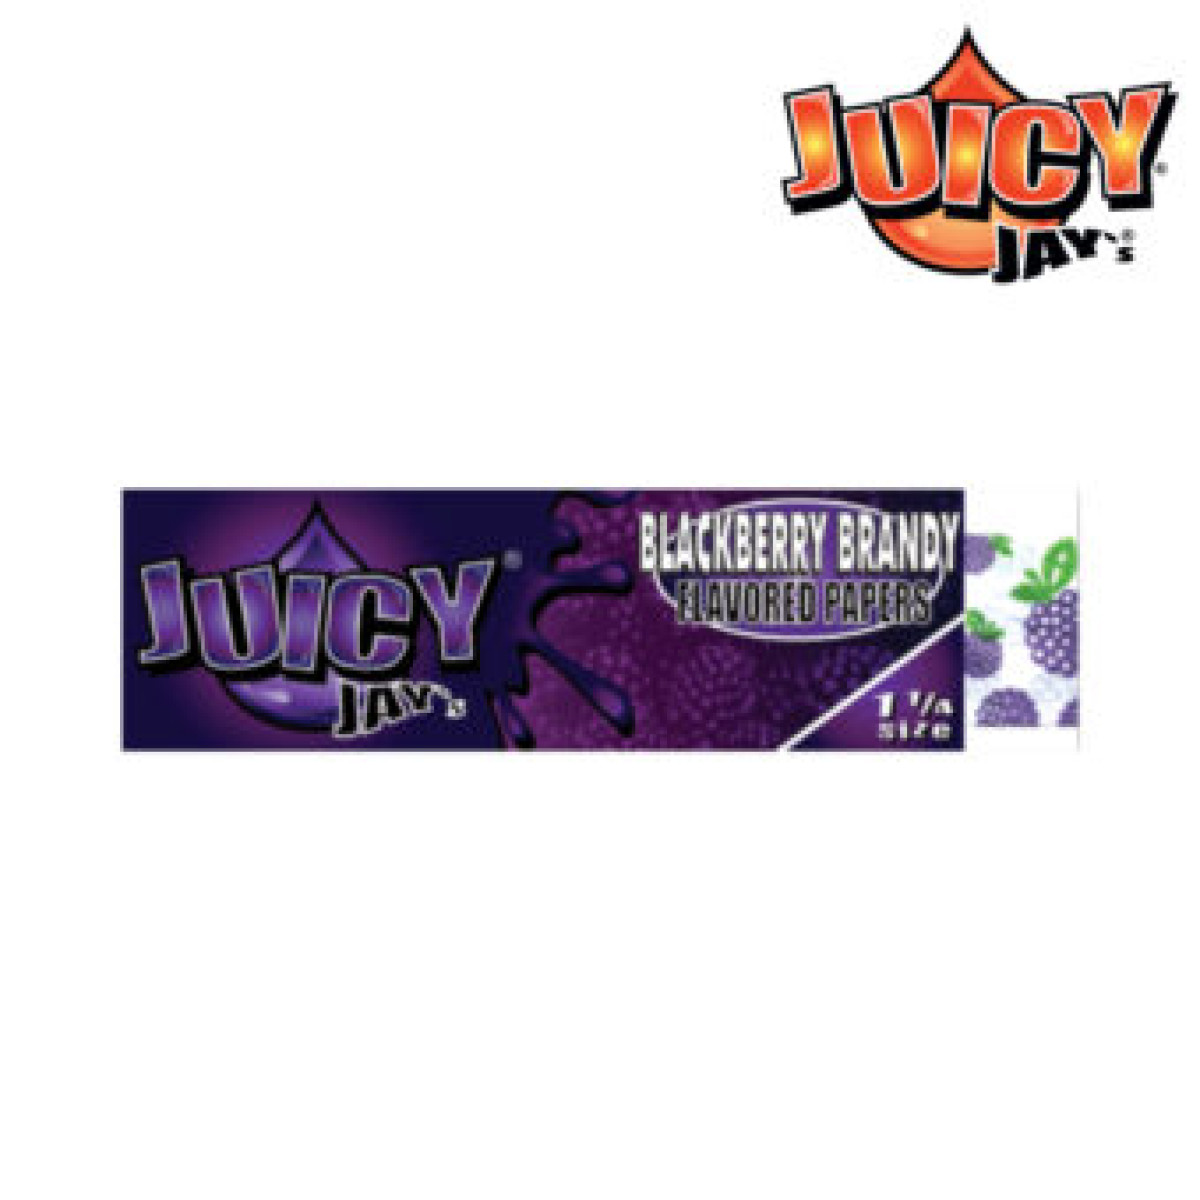 Blackberry Brandy Juicy Jay Papers 1 1/4